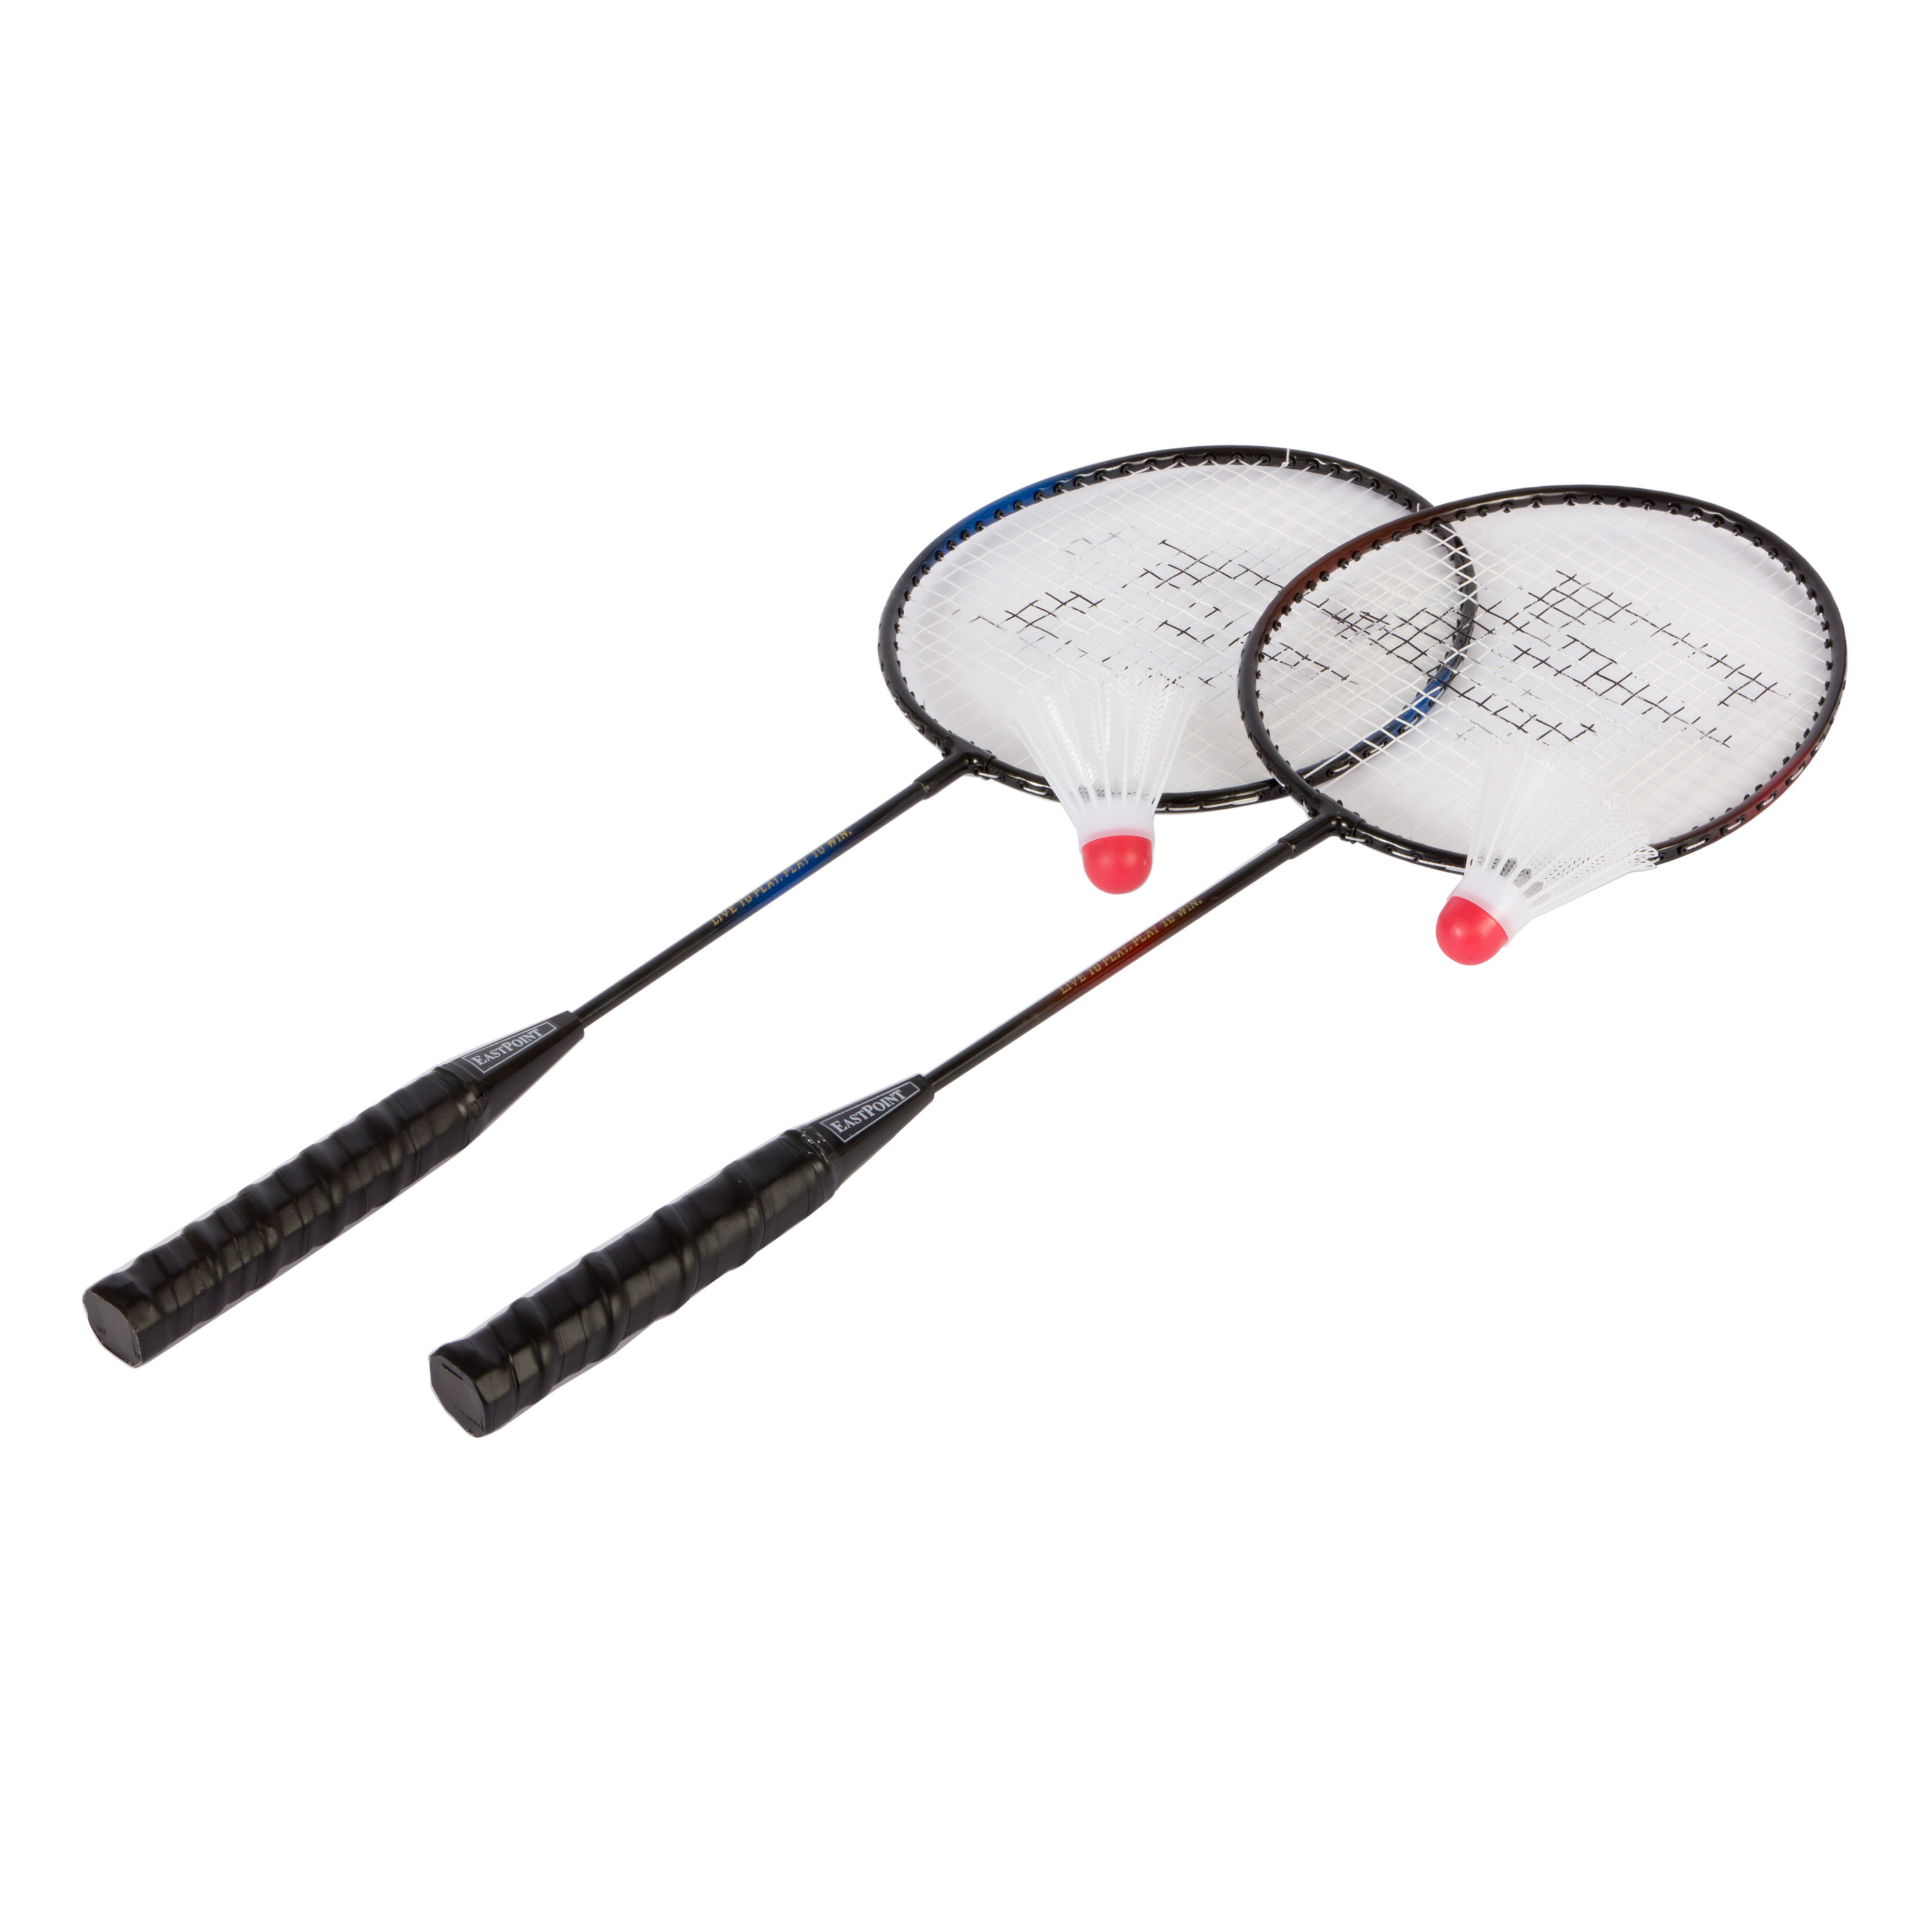 Eastpoint Sports East Point Sports 2 - player Badminton Racket Set With